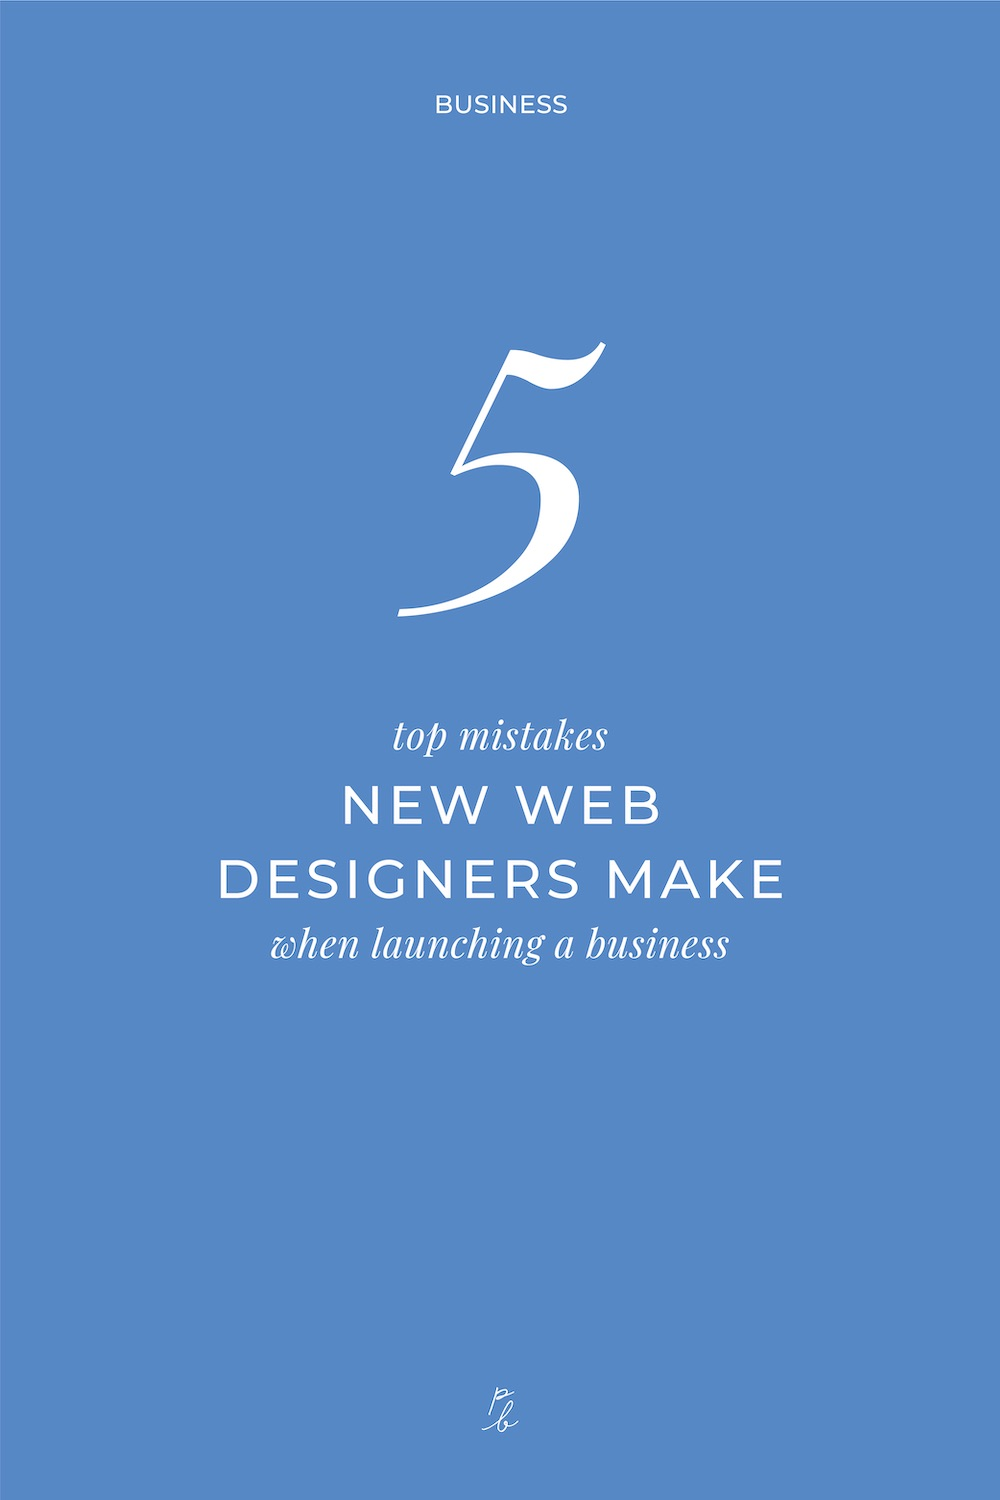 3-5 top mistakes new web designers make when launching a business.jpg